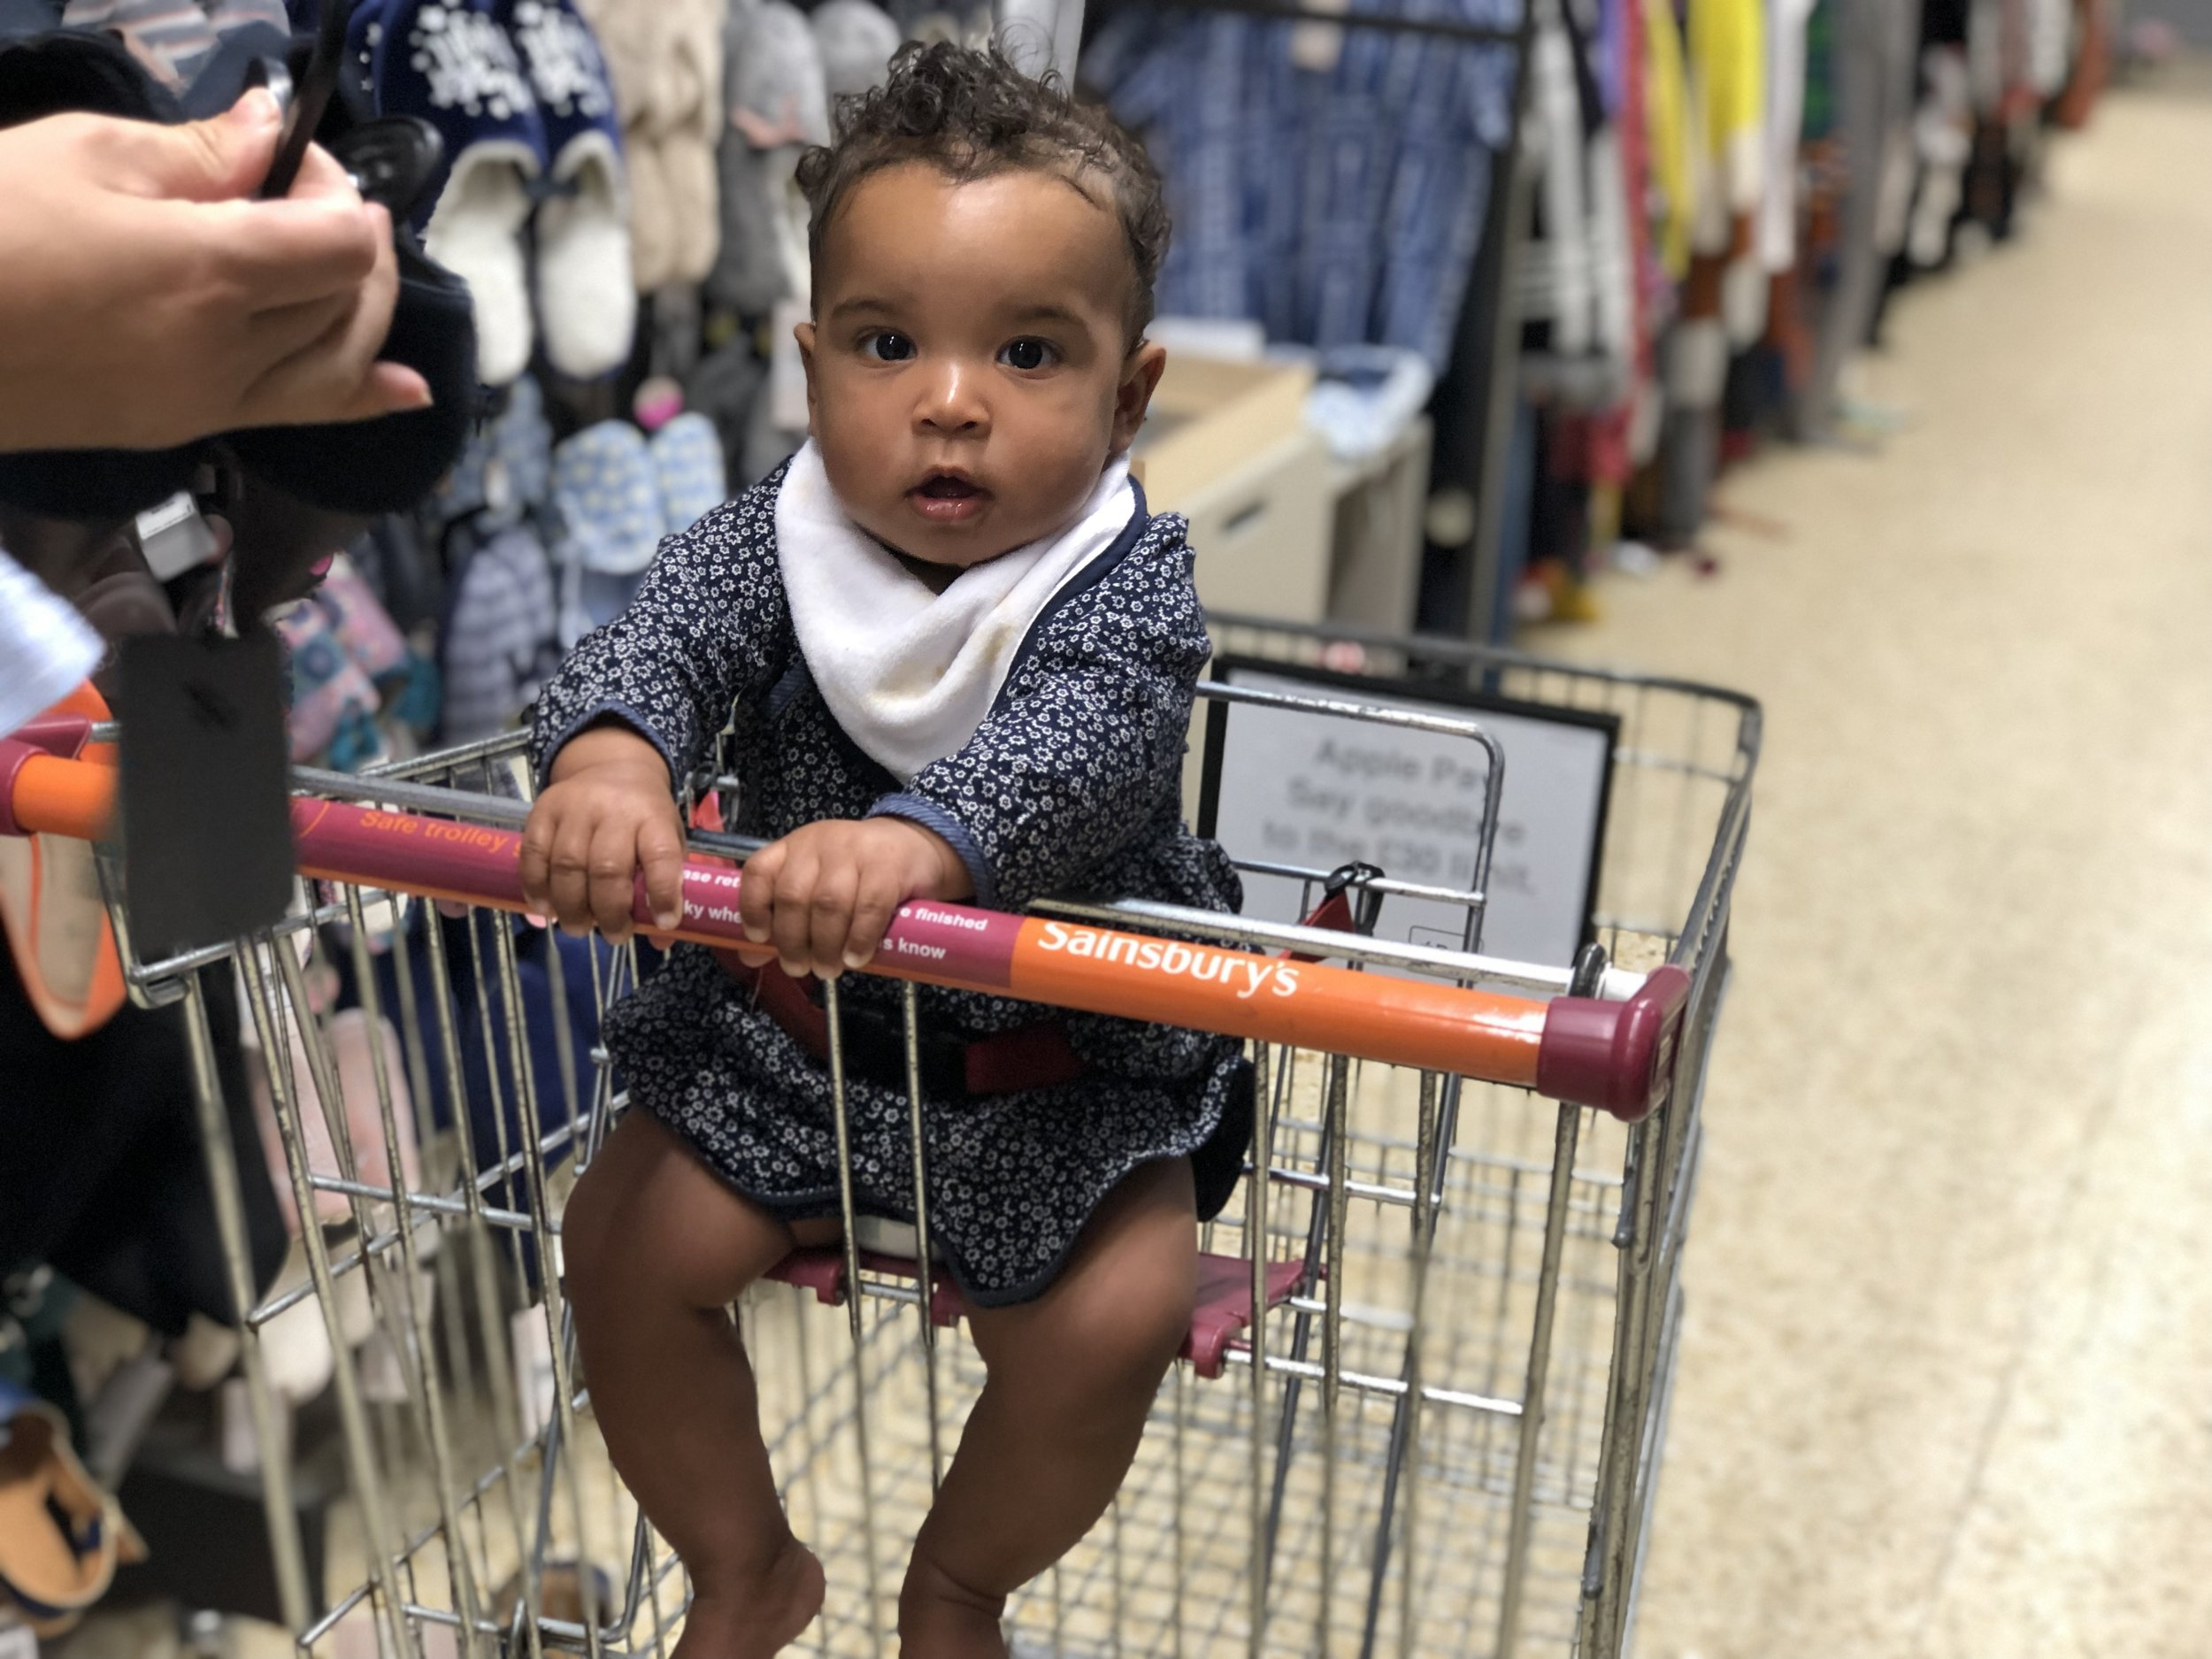 Growing up too fast - in the trolley like a big girl